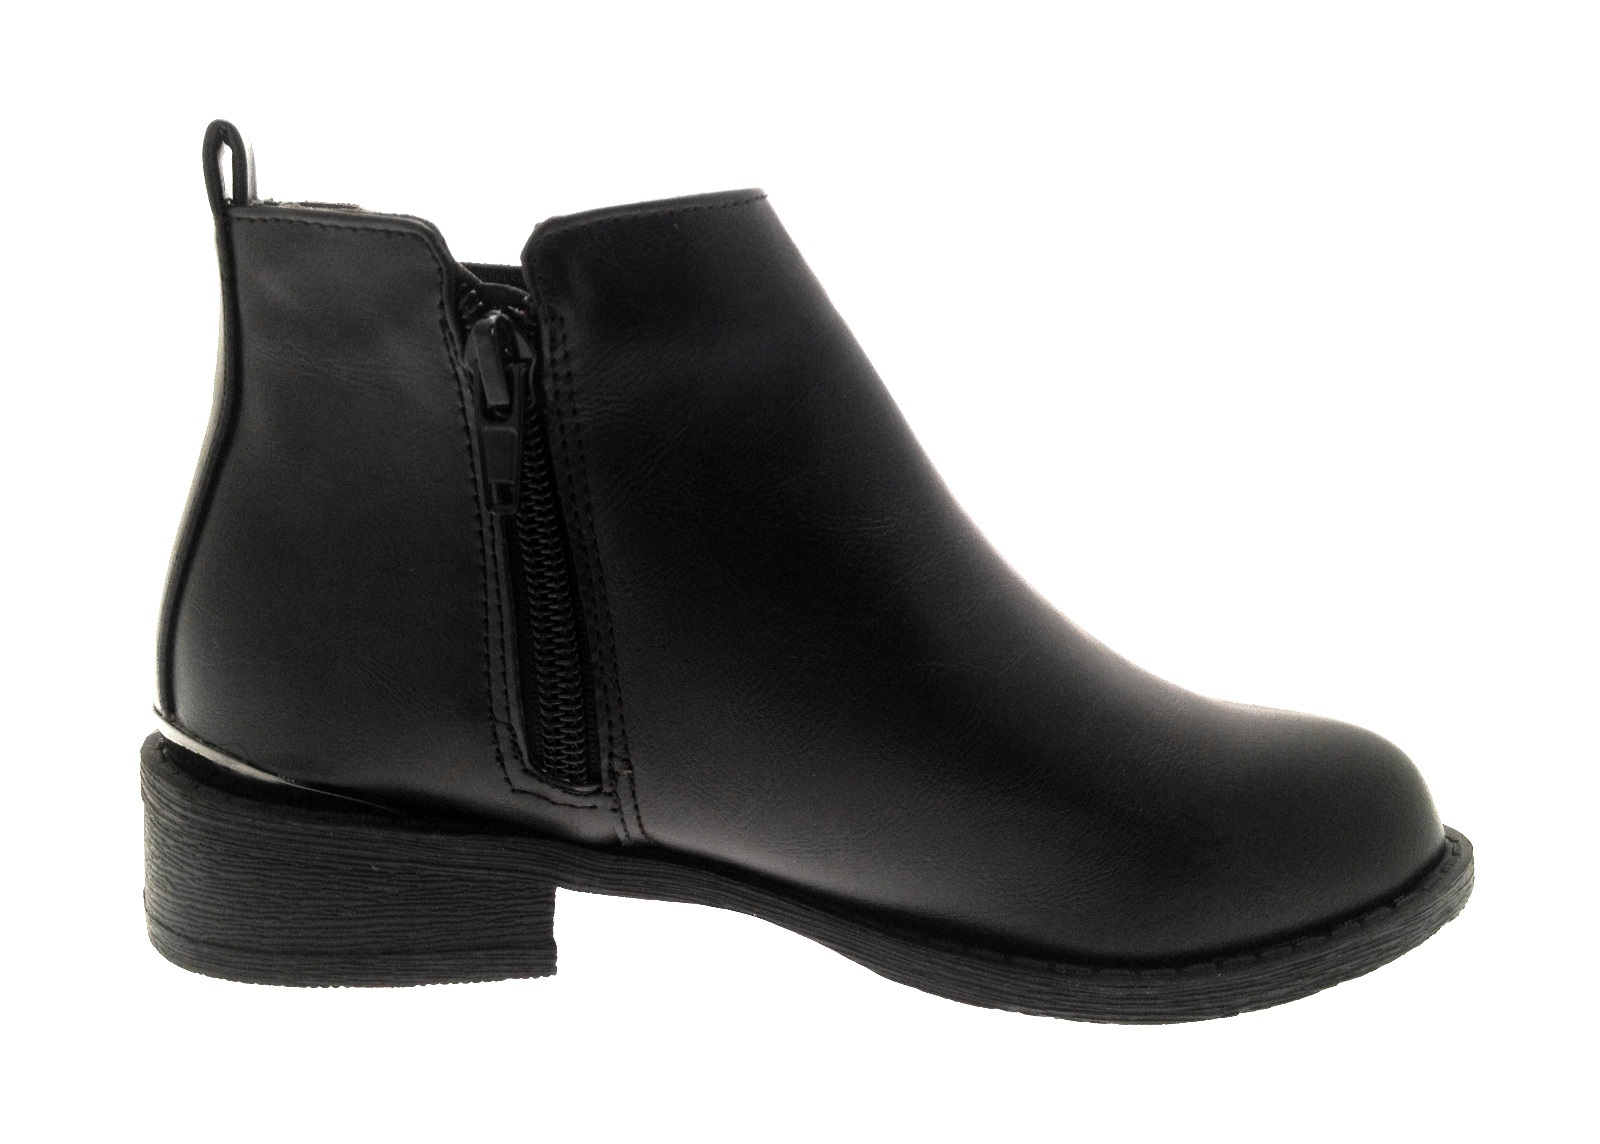 Justice Kids Girls Black Ankle Boots 1. Pre-Owned. $ or Best Offer +$ shipping. Fashion Children Kids Boy Girl Ankle Boots Toddler Baby Leather Winter Shoes USA. New (Other) Kids Ankle Boots Leather Soft Boys Girls Casual Comfy Flat Breathable Shoes. Unbranded. $ Buy It Now. Free Shipping.